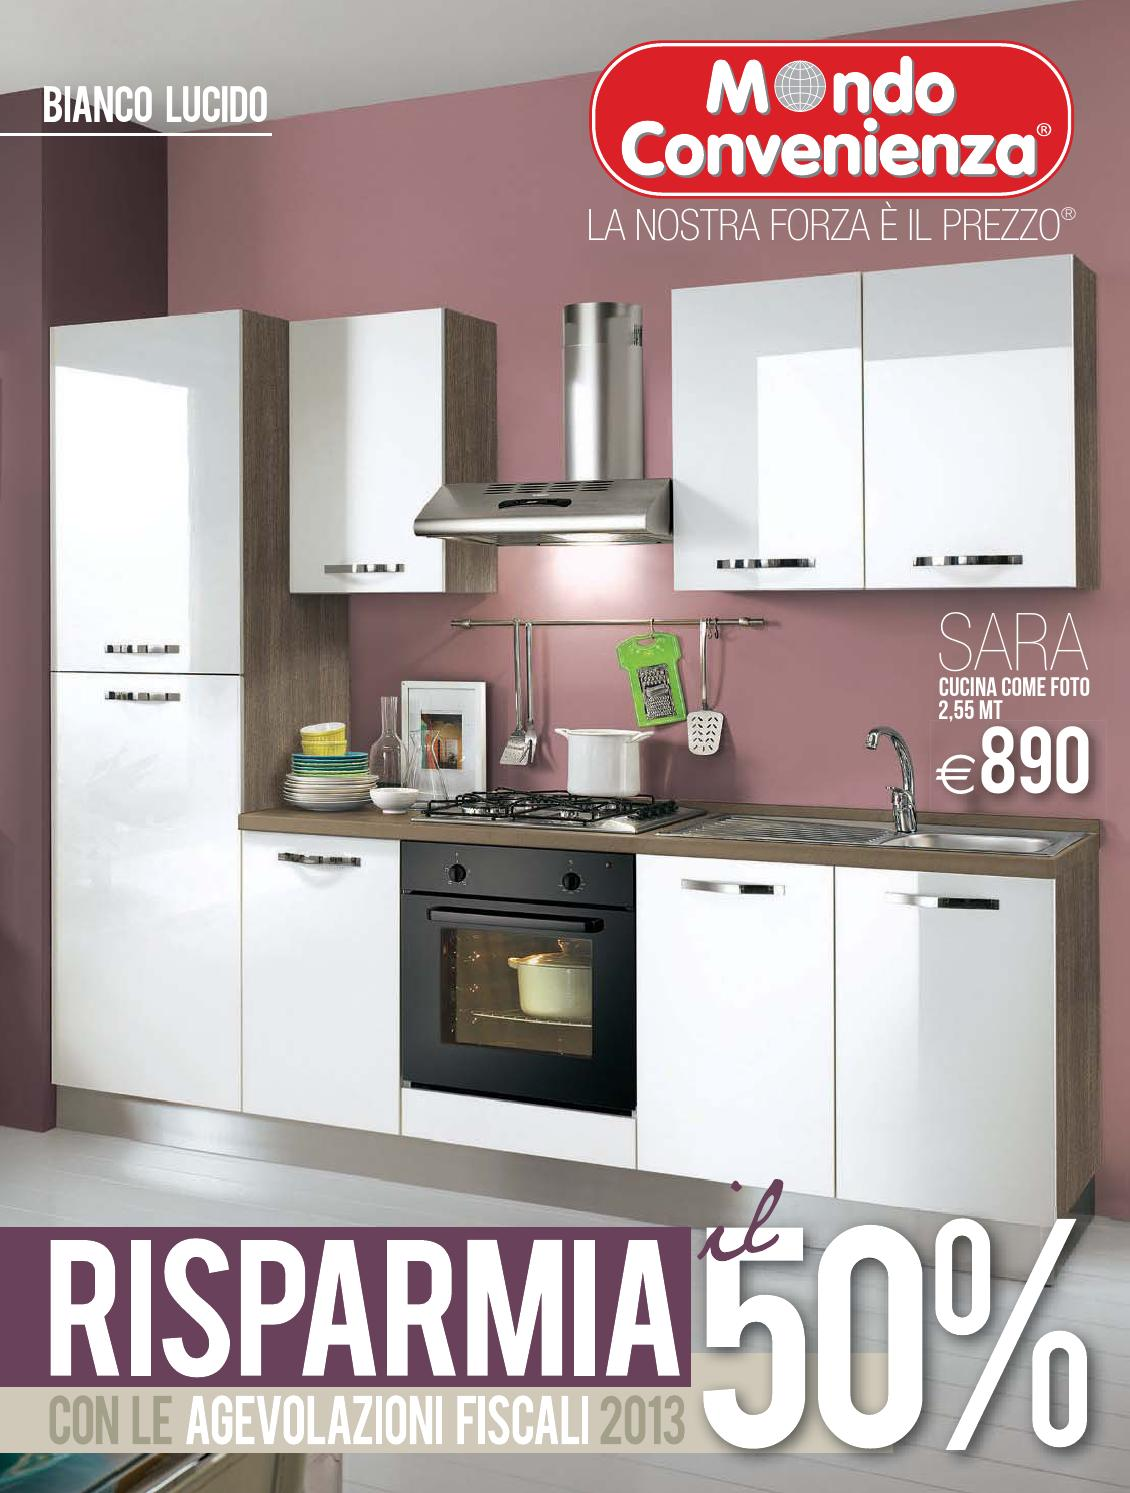 Mondo convenienza catalogo autunno 2013 by mobilpro issuu - Mondo convenienza cucine outlet ...